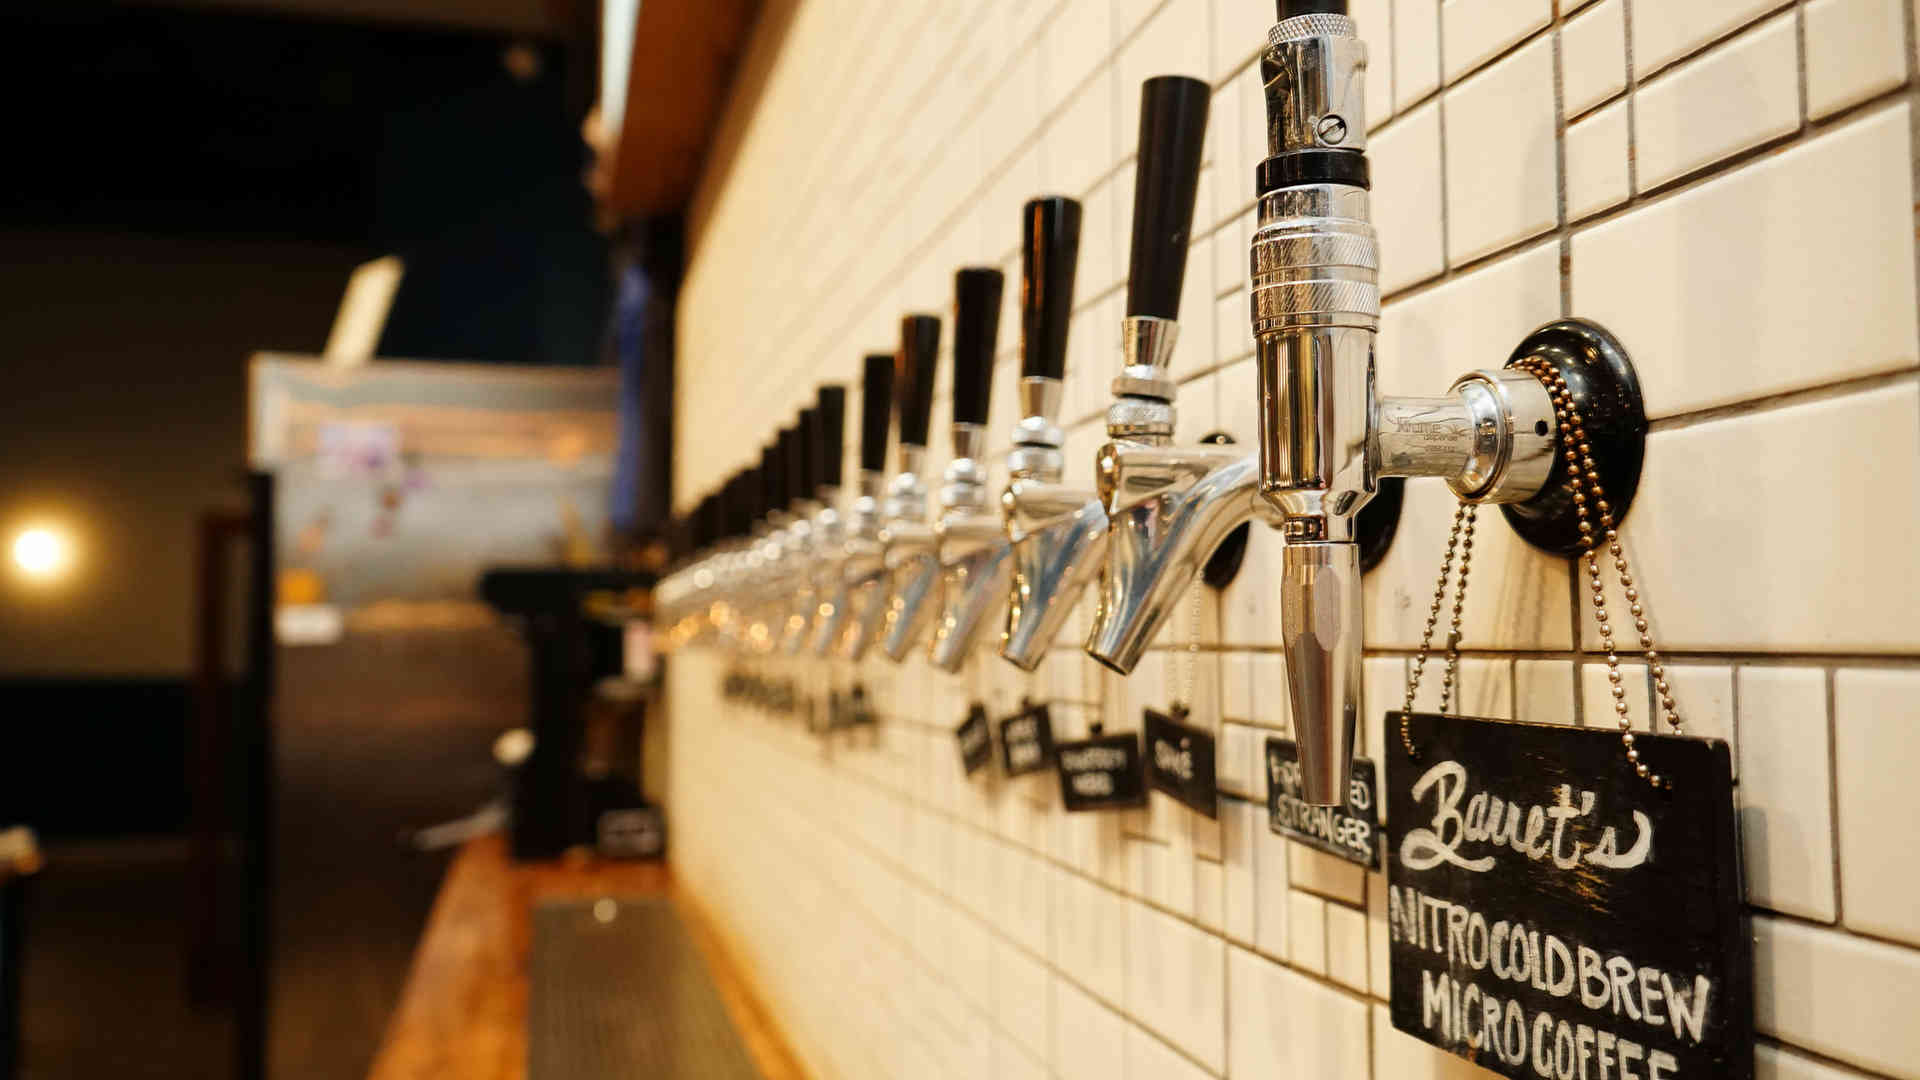 The Brewtorium tap wall